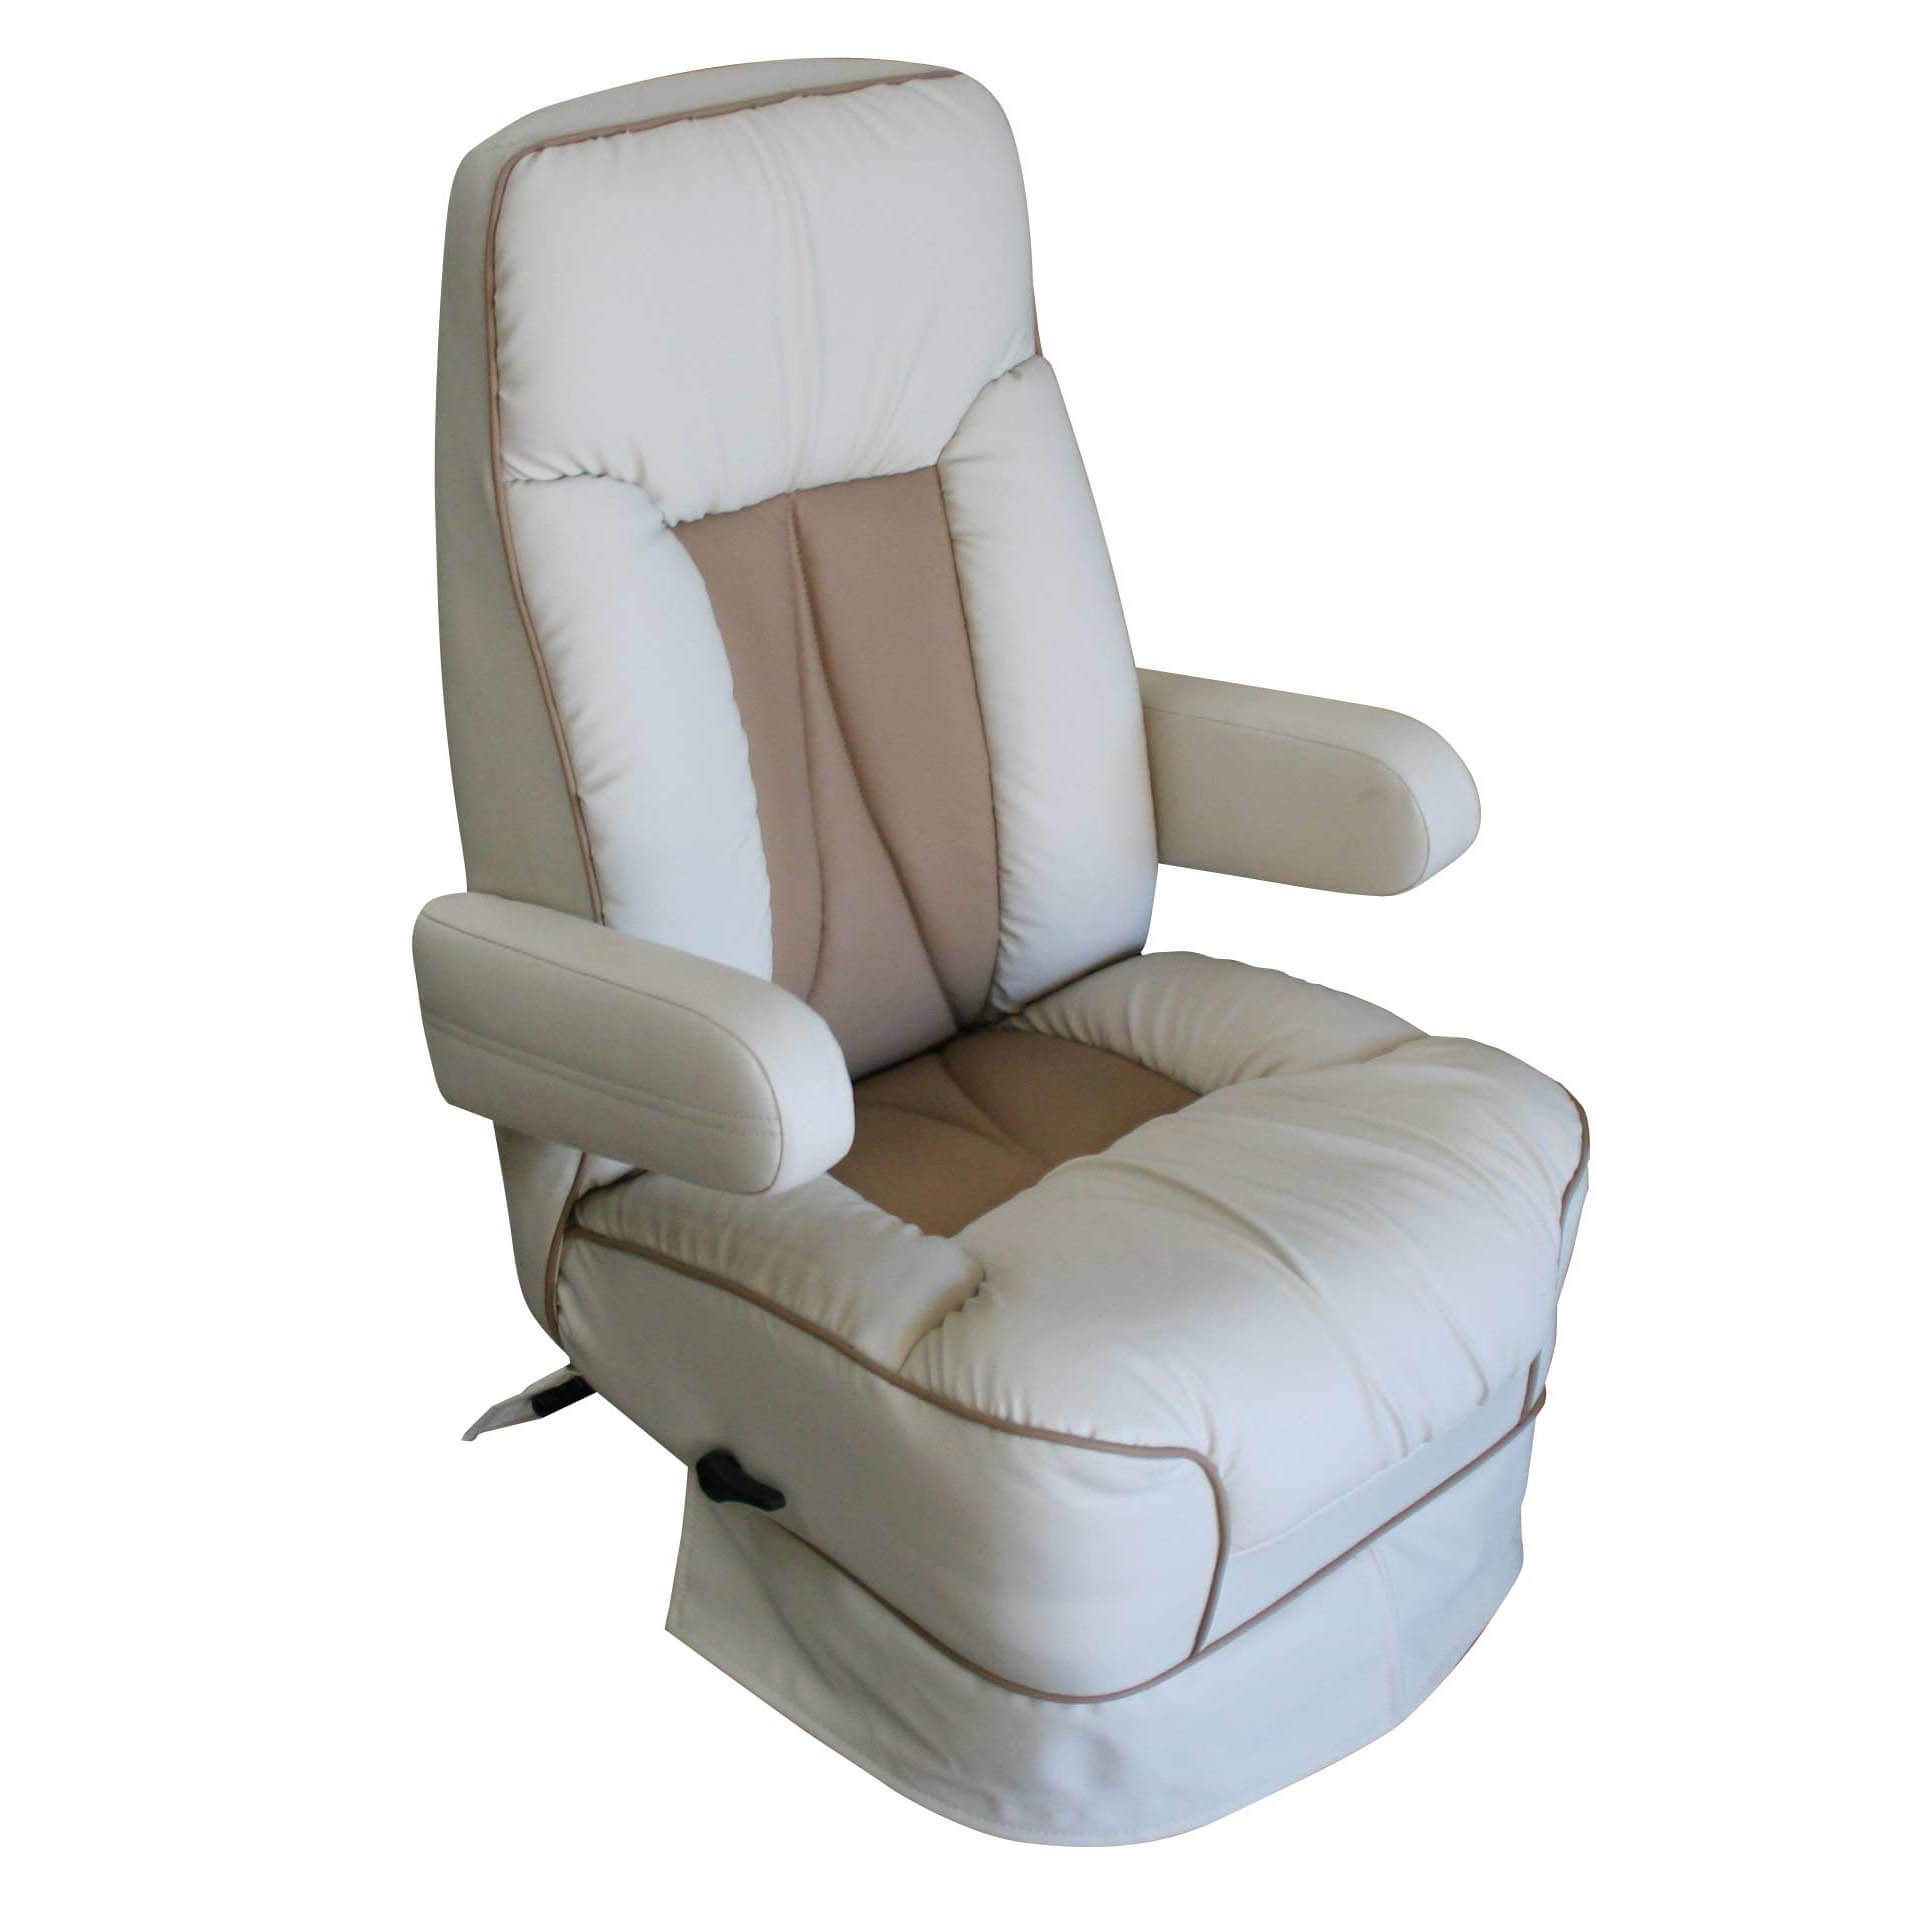 De leon ii rv furniture package rv seating for K y furniture lebanon pa